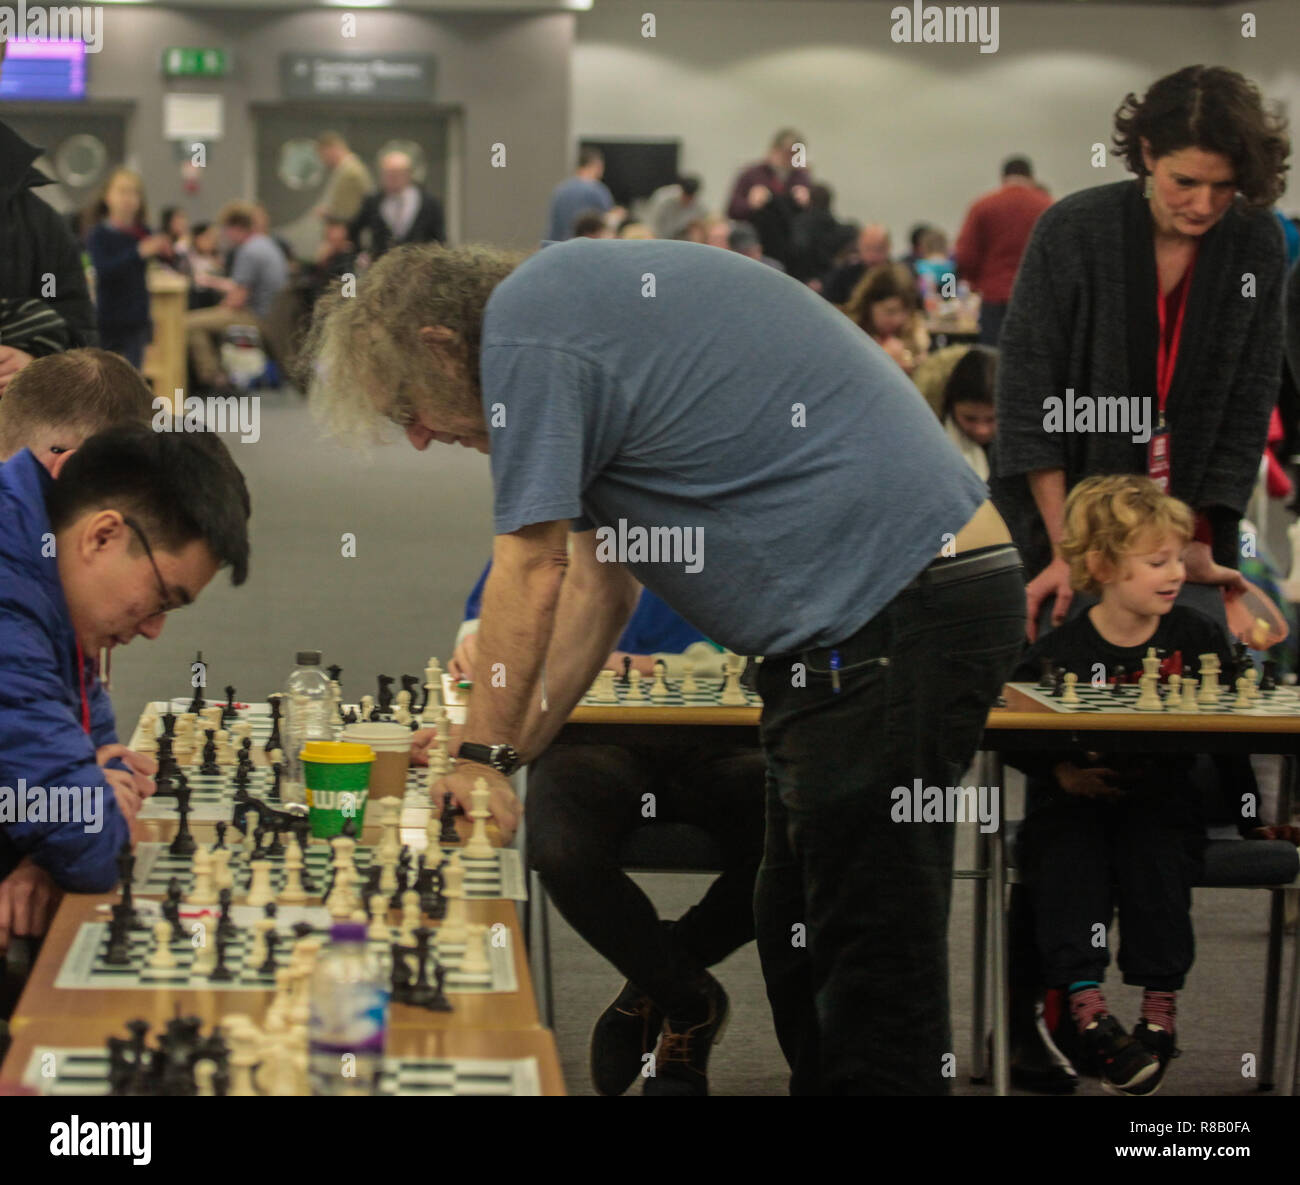 London UK 15 December 2018 British chess  Grandmaster Jon Speelman, giving  a simultaneous display over 20 boards at the London Chess Classic held in London Olympia 2018 Credit: Paul Quezada-Neiman/Alamy Live News - Stock Image